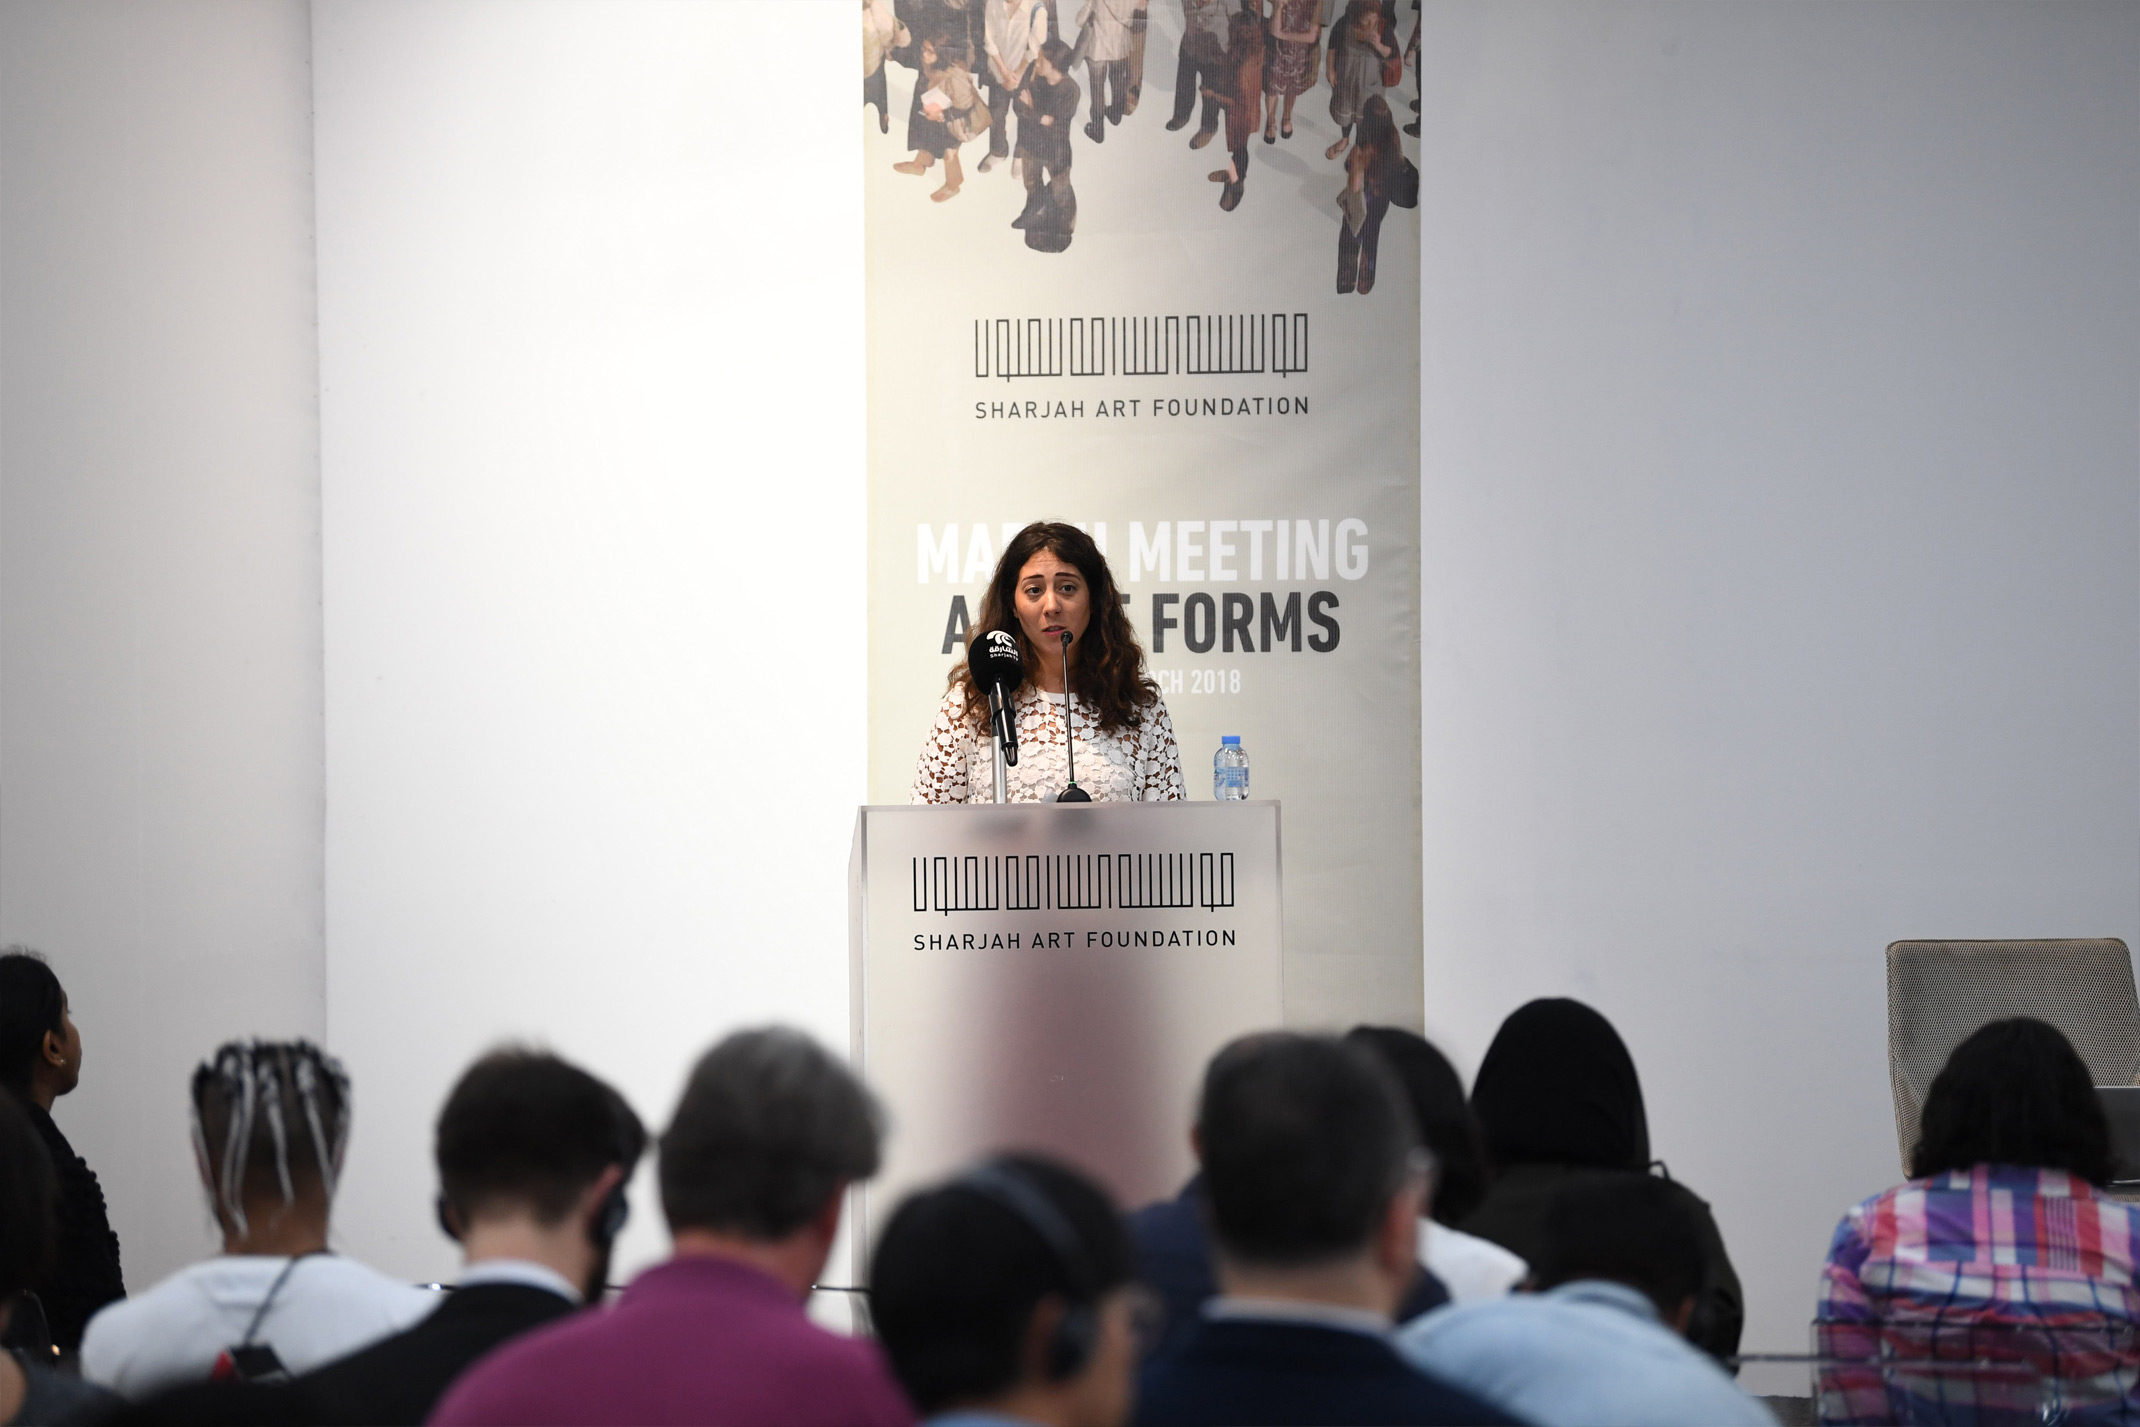 Introduction by Sharjah Art Foundation Image